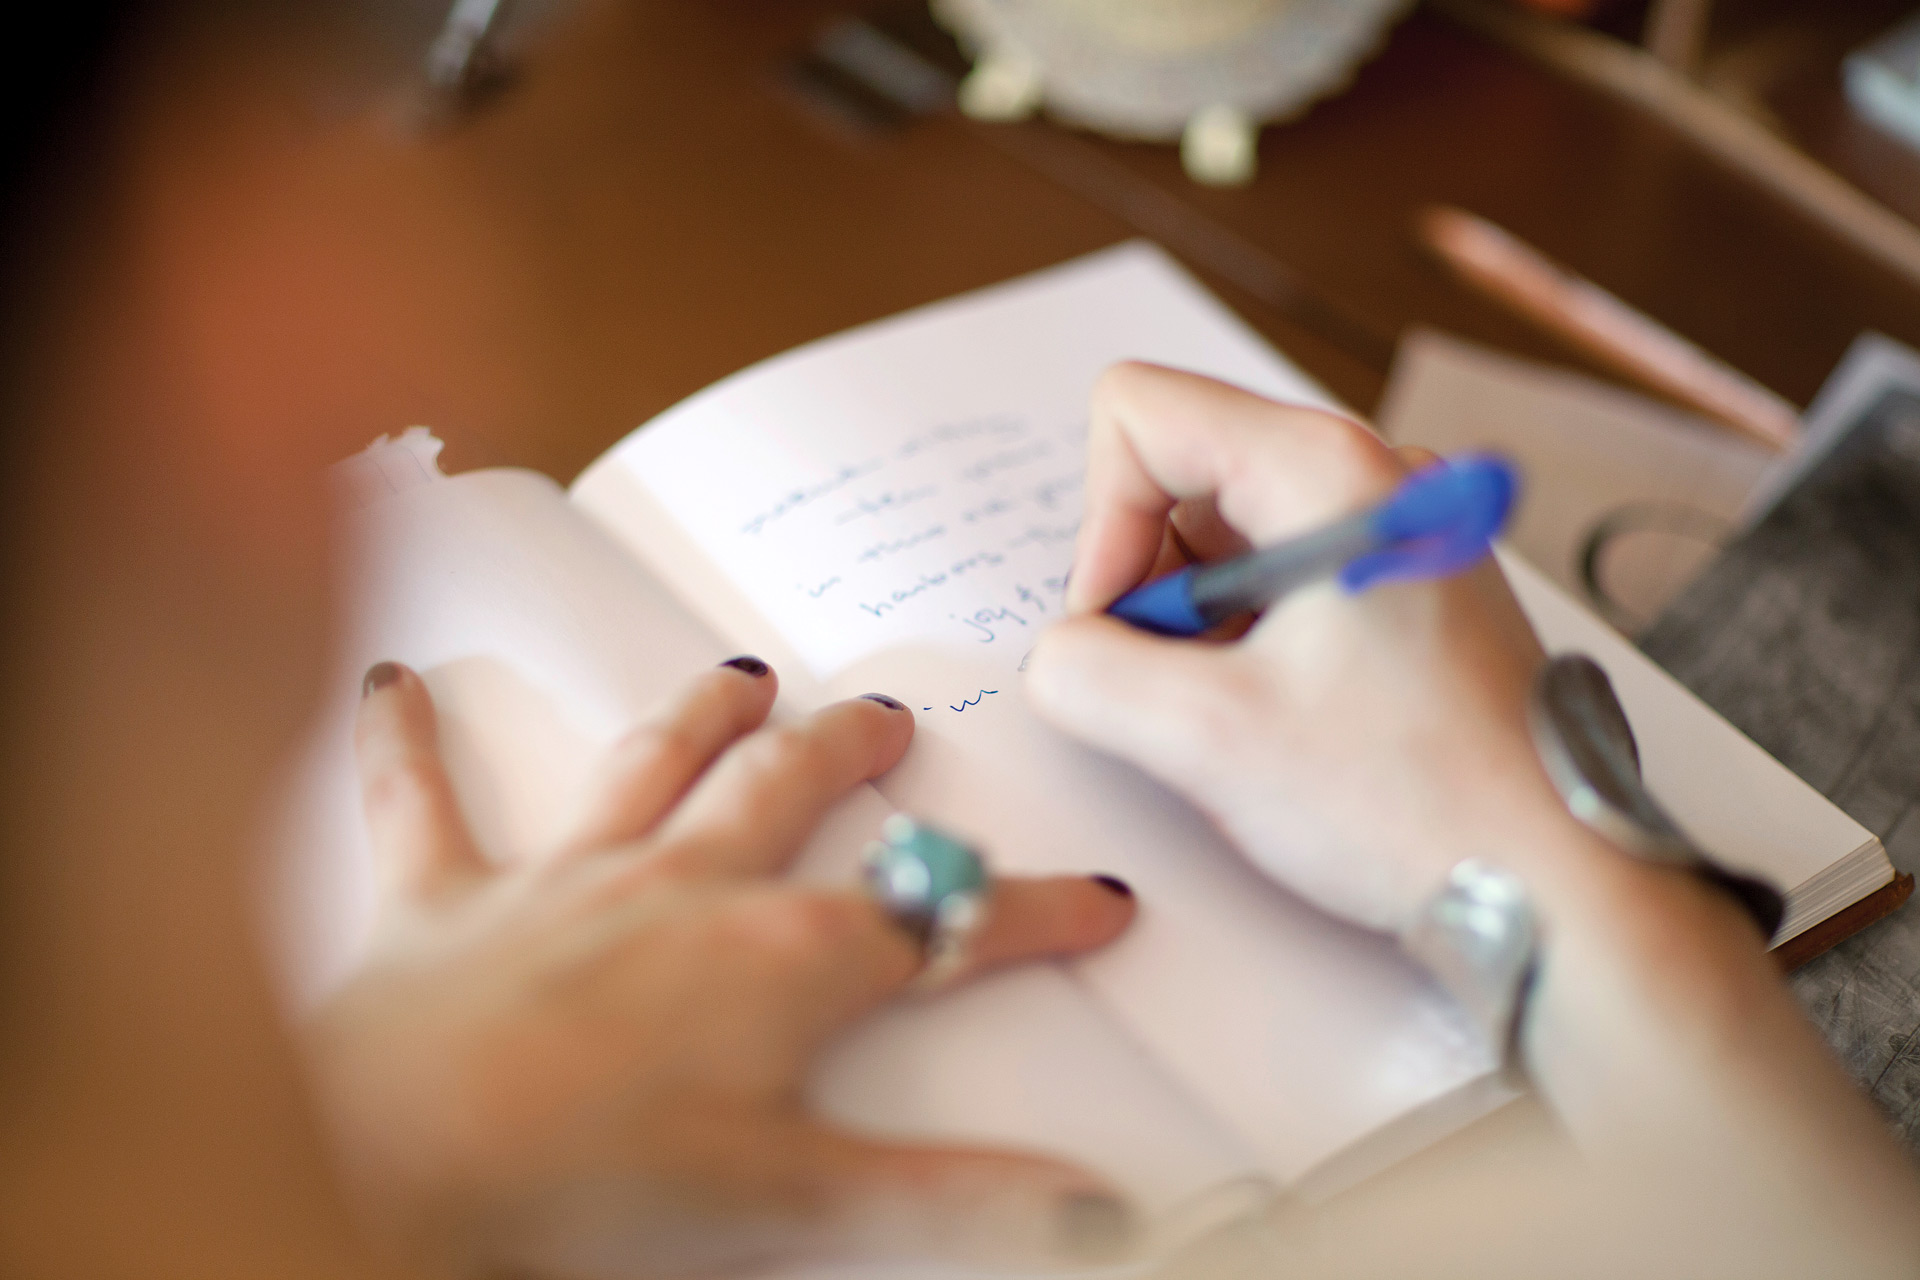 Creative writing student putting pen to paper